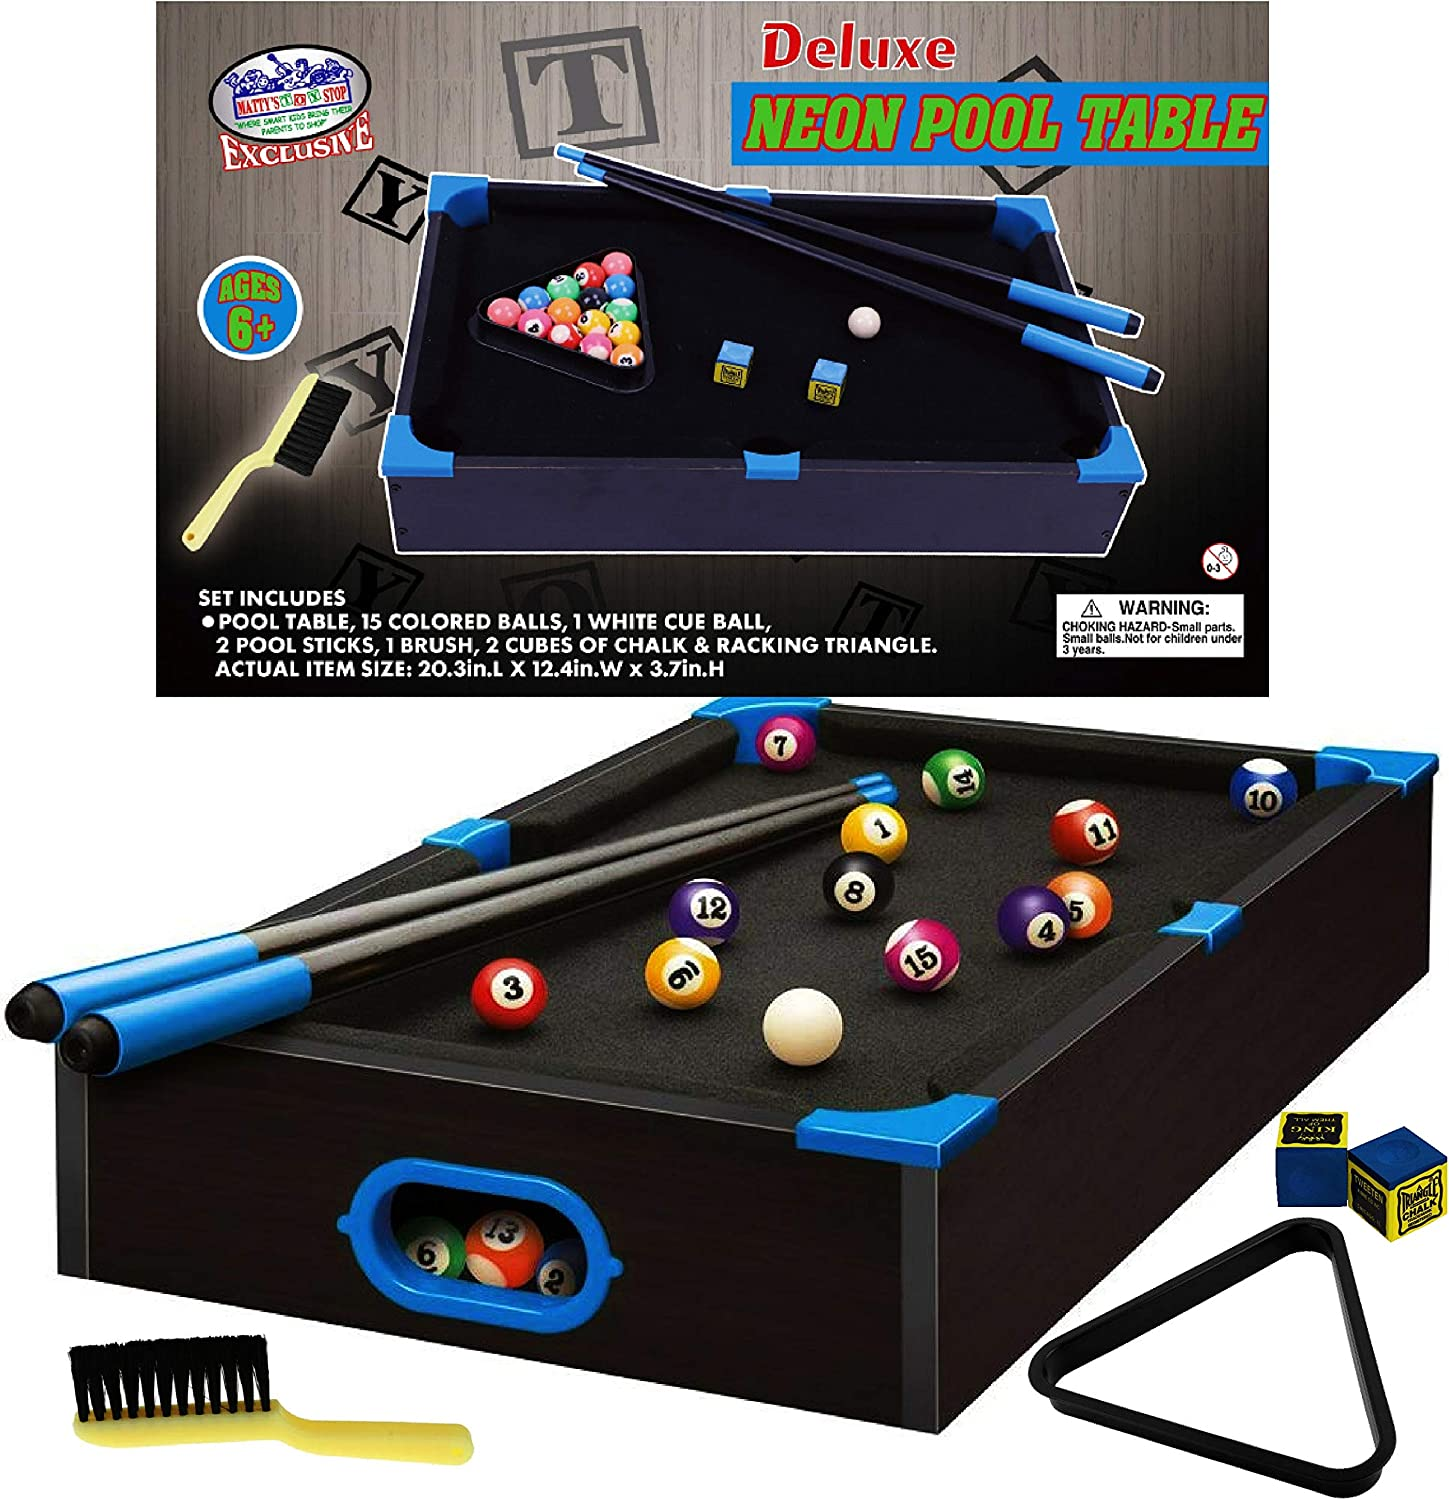 """Matty's Toy Stop Deluxe Wooden 20"""" Mini Table Top NEON Pool (Billiards) Table with 15 Colored Balls, 1 Cue Ball, 1 Brush, 2 Pool Sticks, 2 Cubes of Chalk & Racking Triangle : Sports & Outdoors"""